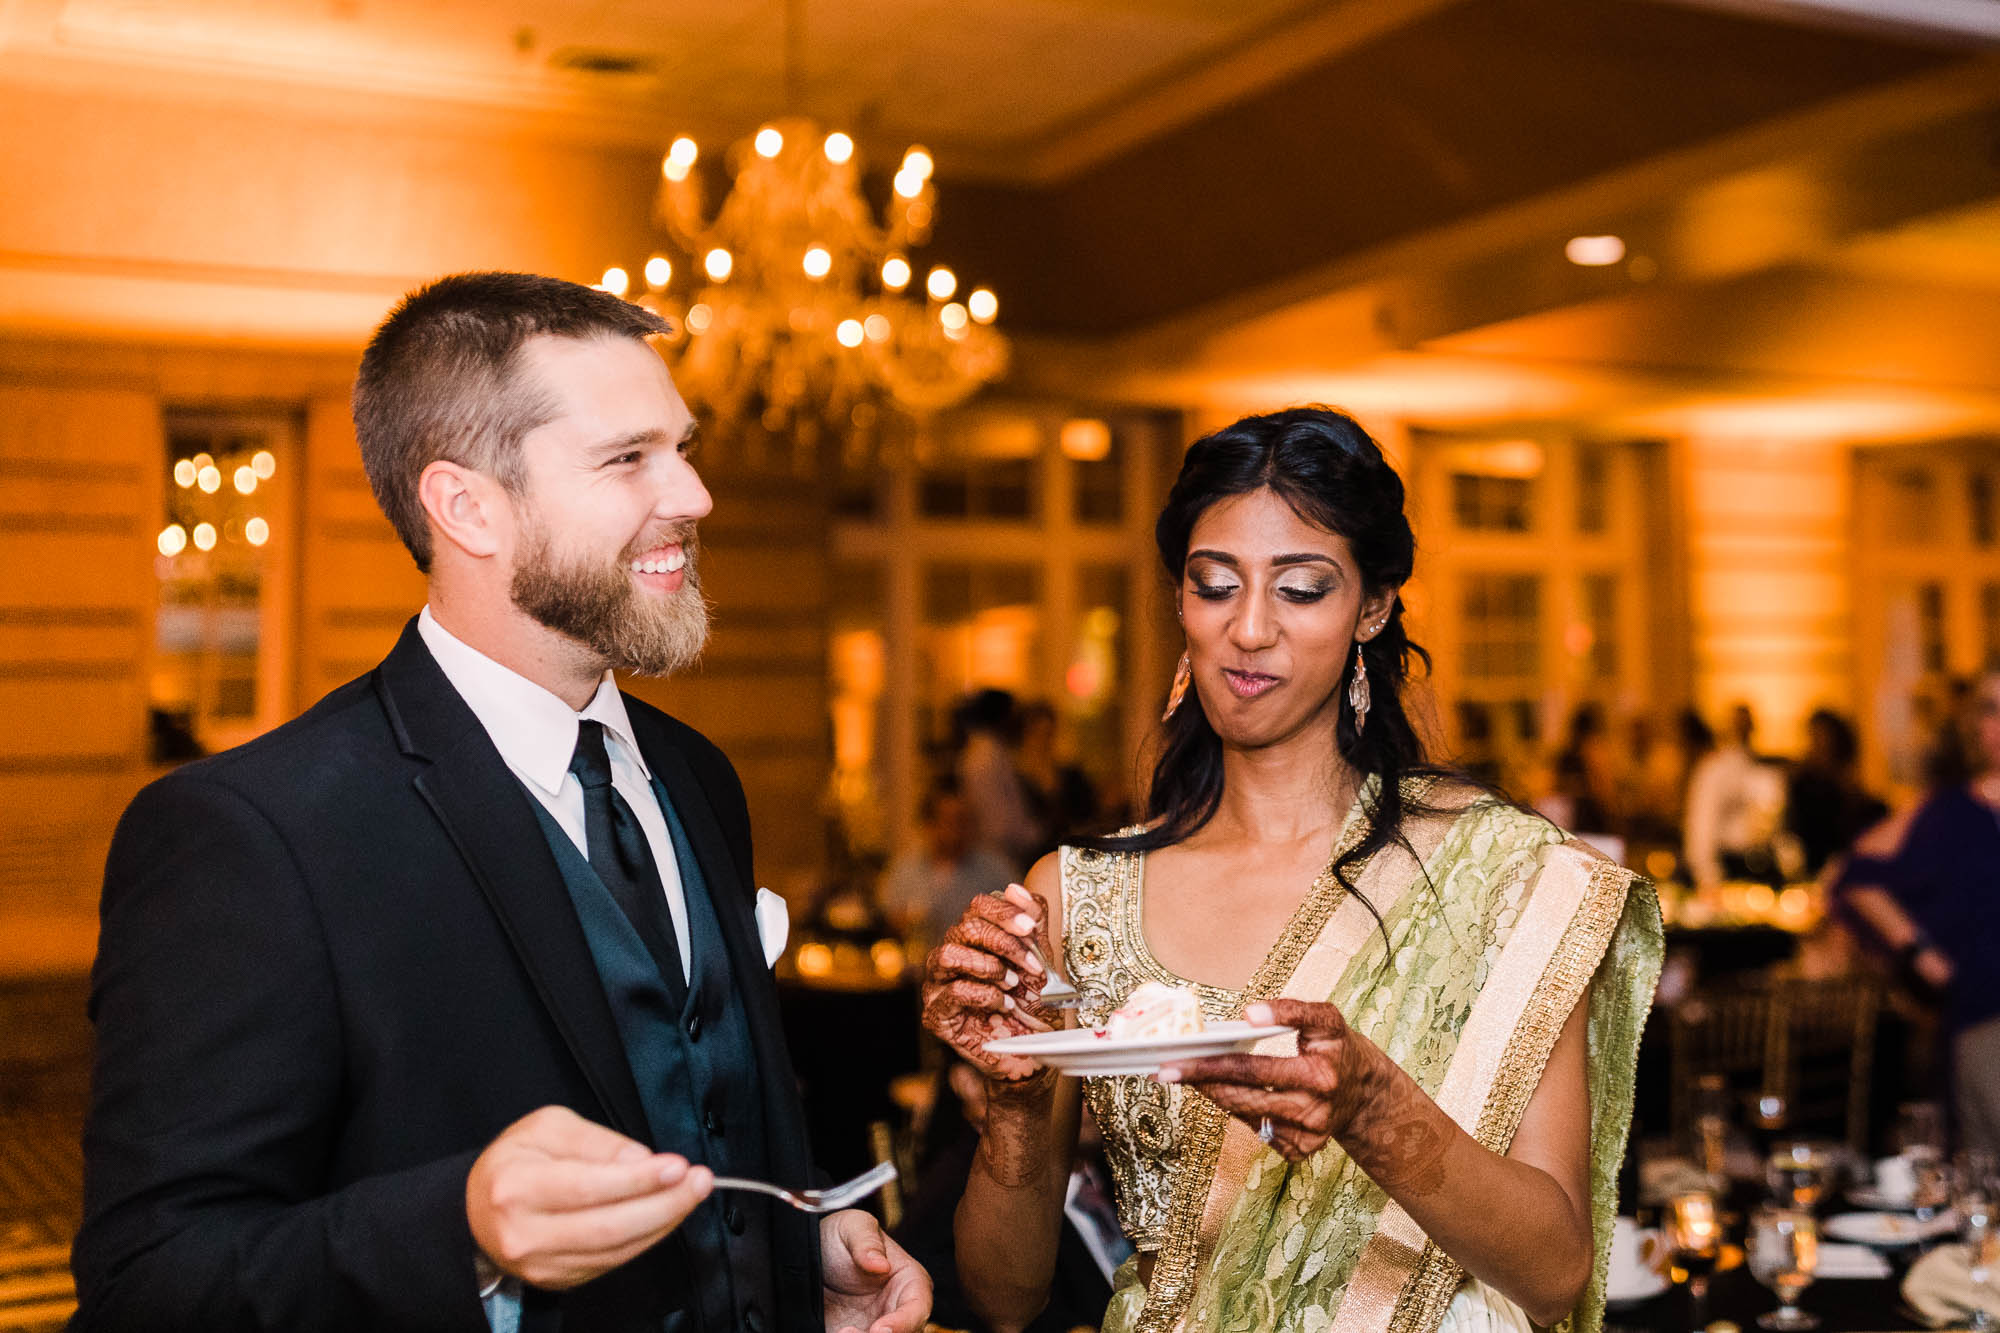 Scranton_Radisson_Hindu_Wedding-9938.jpg